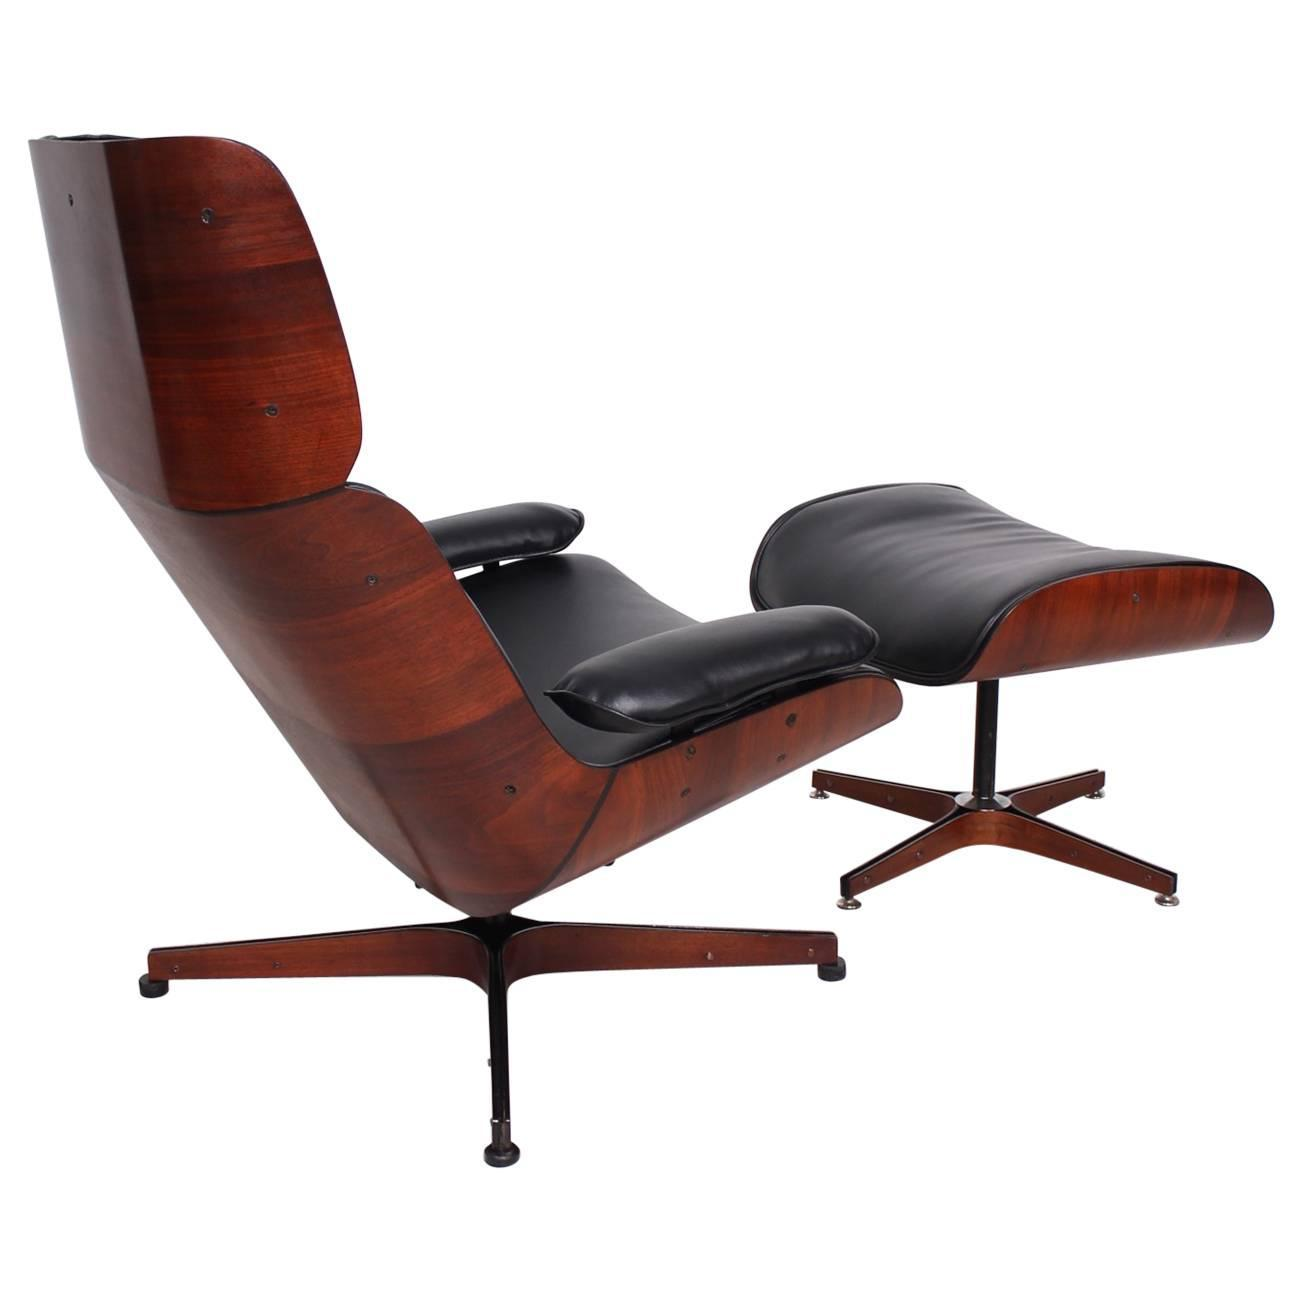 Incroyable Mid Century Modern George Mulhauser Mr Chair For Plycraft Eames Era At  1stdibs